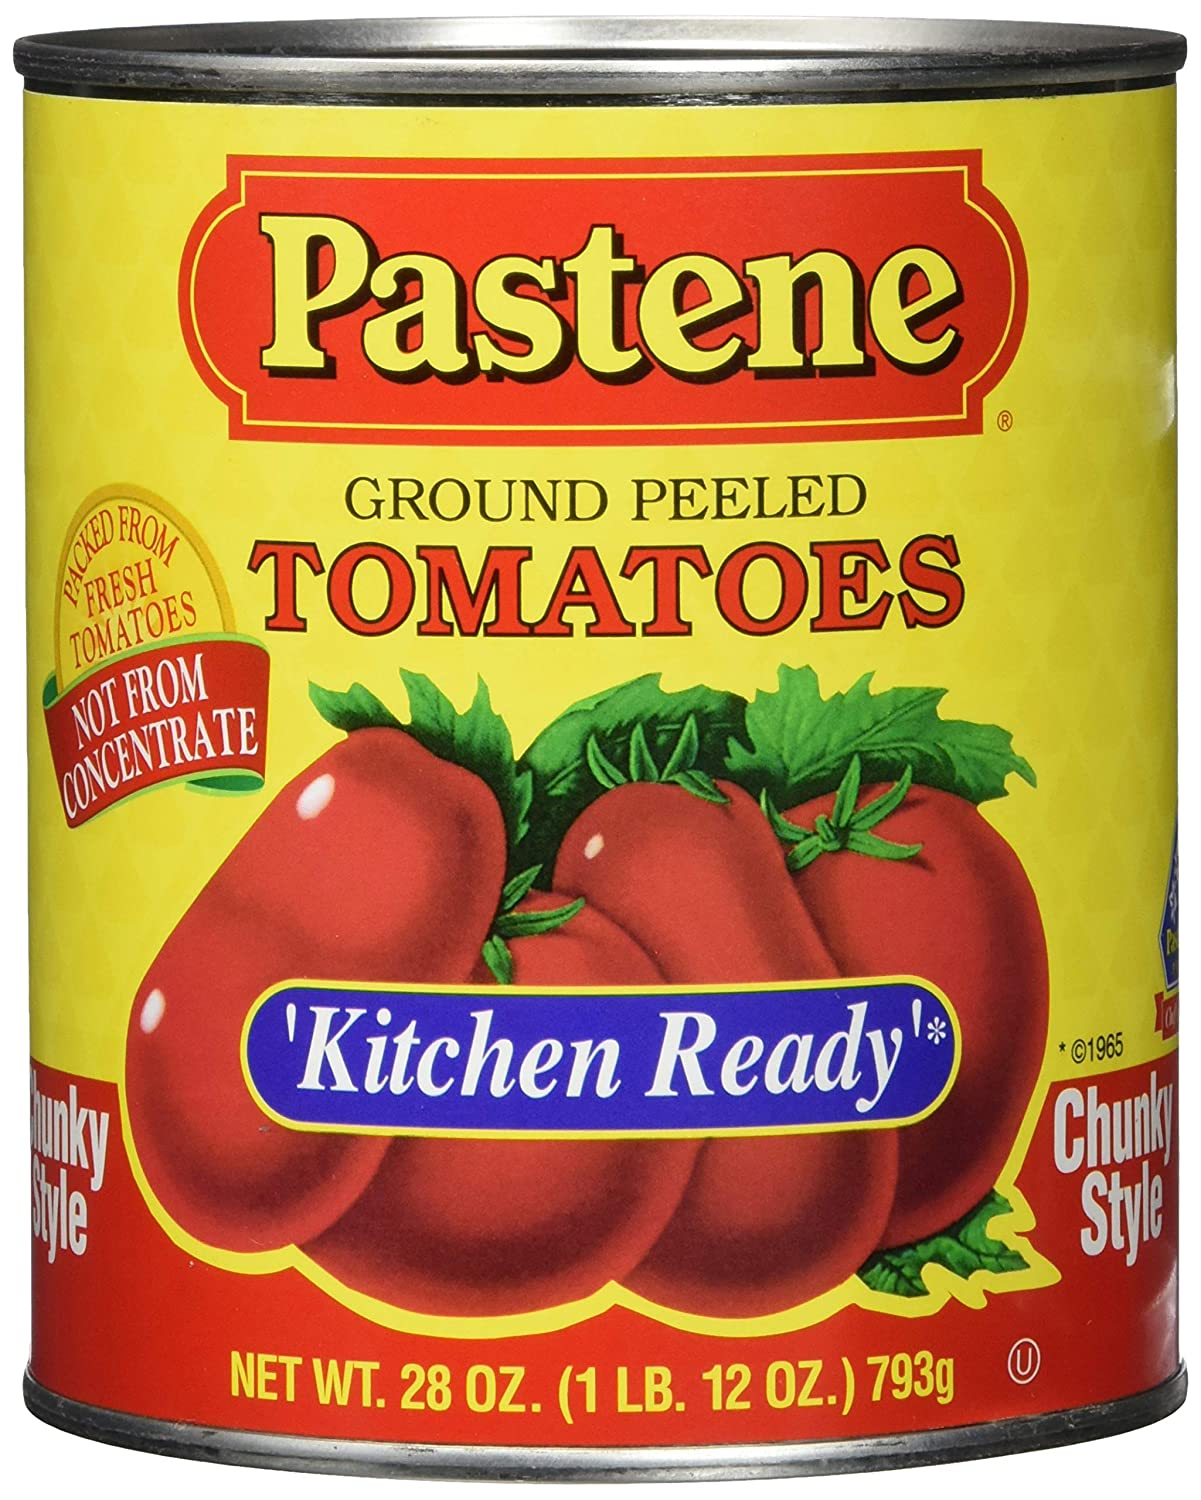 Pastene Kitchen Ready Chunky Ground P Peeled 70% OFF Outlet High quality Tomatoes Ounce 28